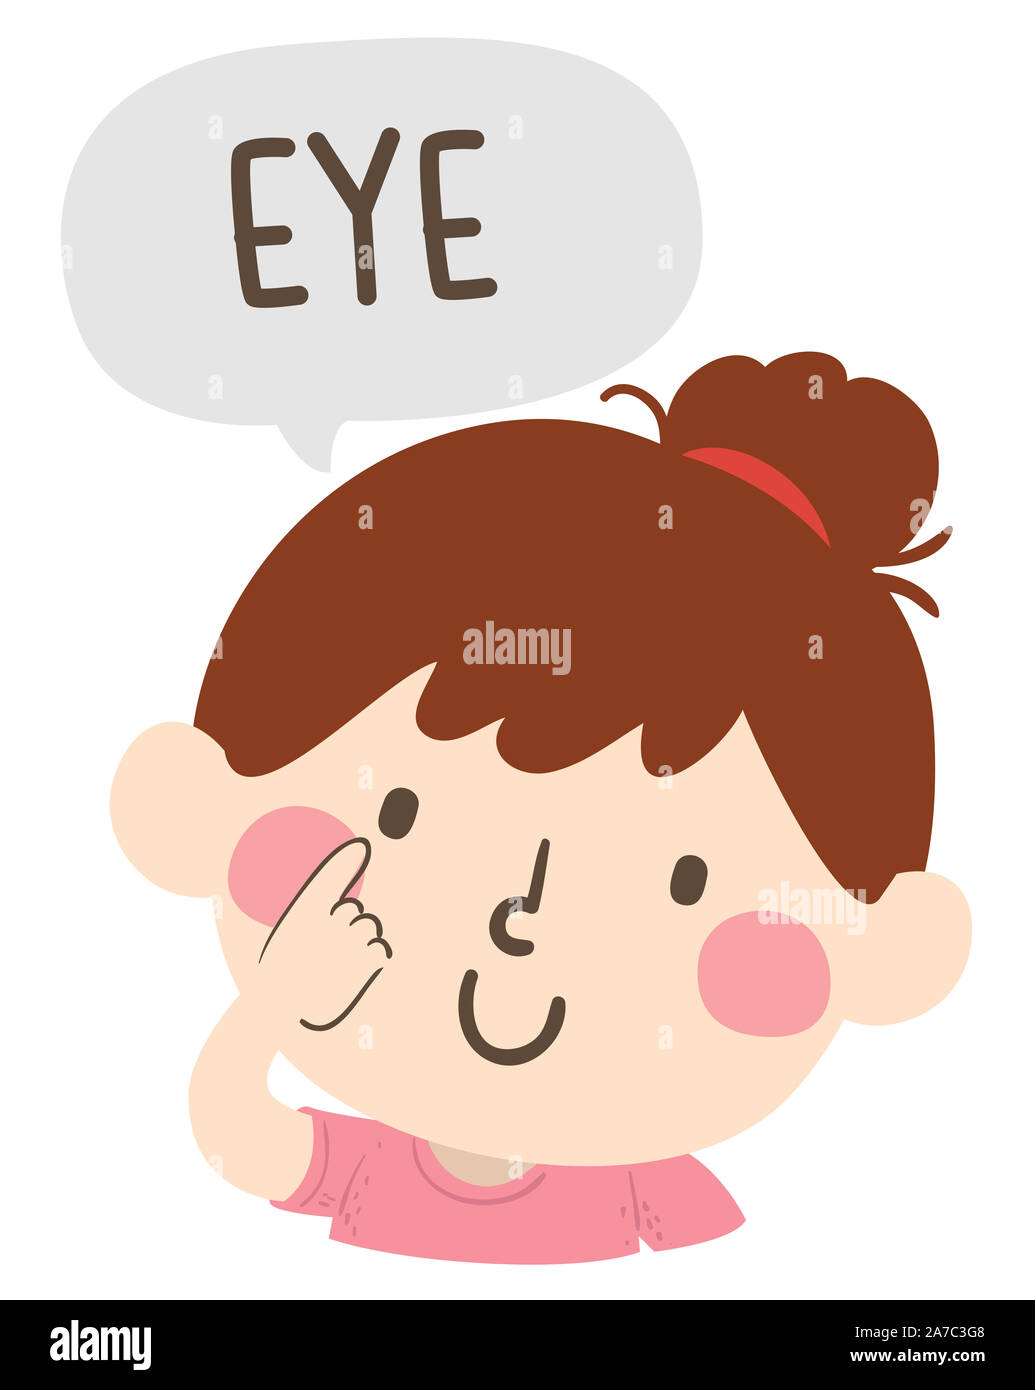 Illustration Of A Kid Girl Pointing To And Saying Eye As